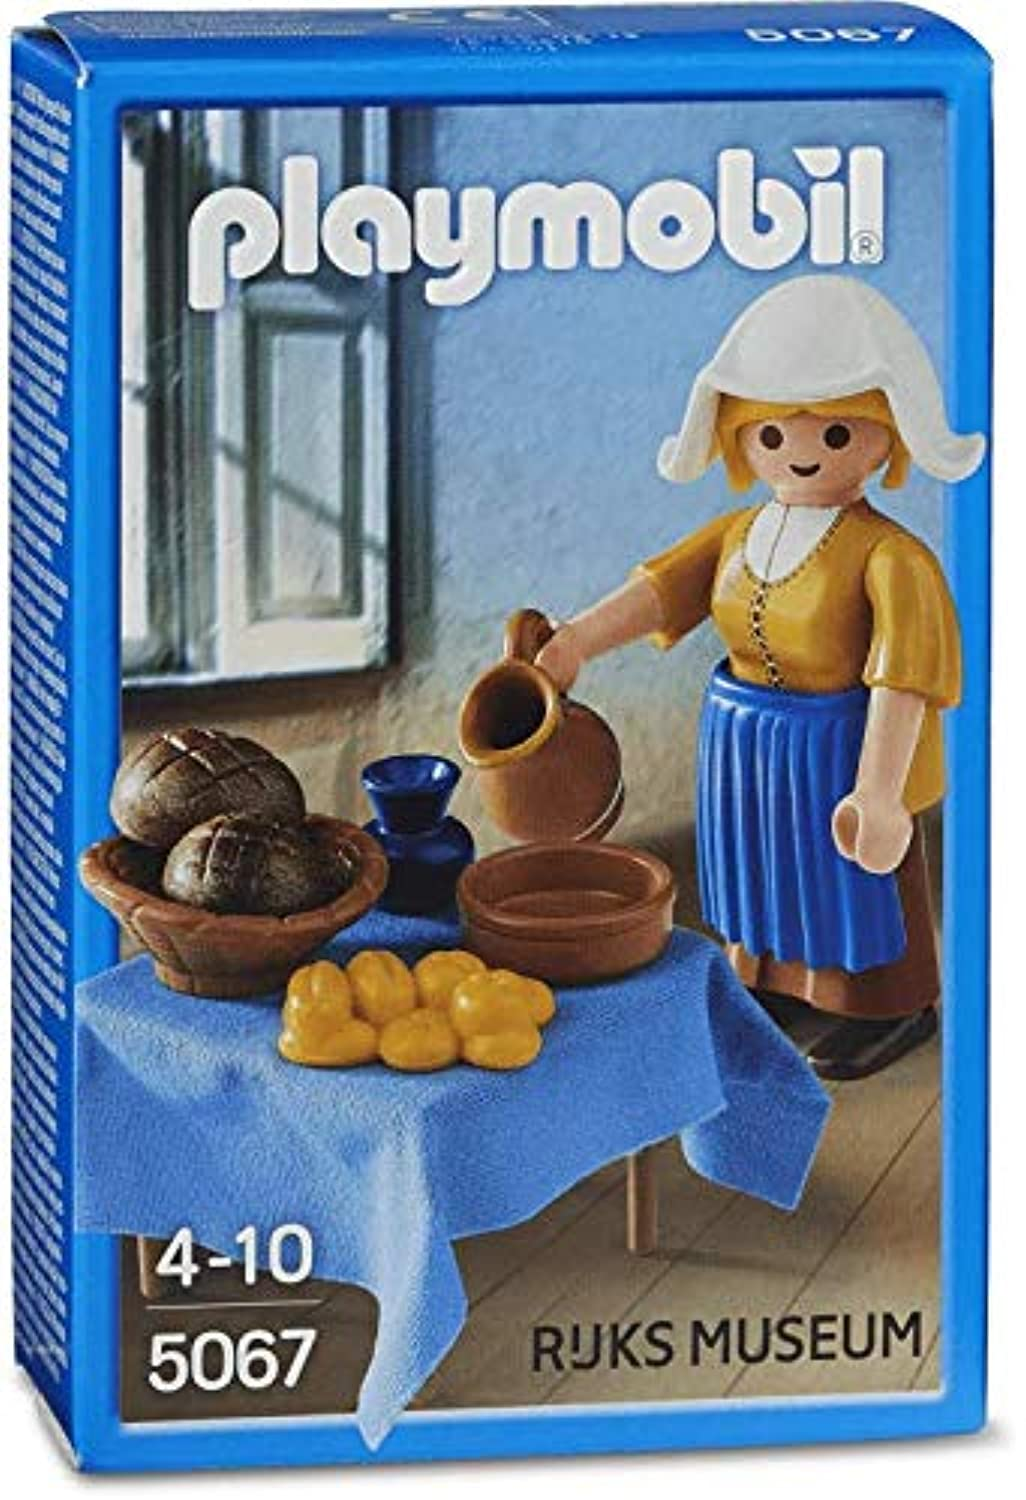 PLAYMOBIL (プレイモービル) #5067 The Milkmaid From Rijks Museum LIMITED EDITION -New-Factory Sealed!(並行輸入品)